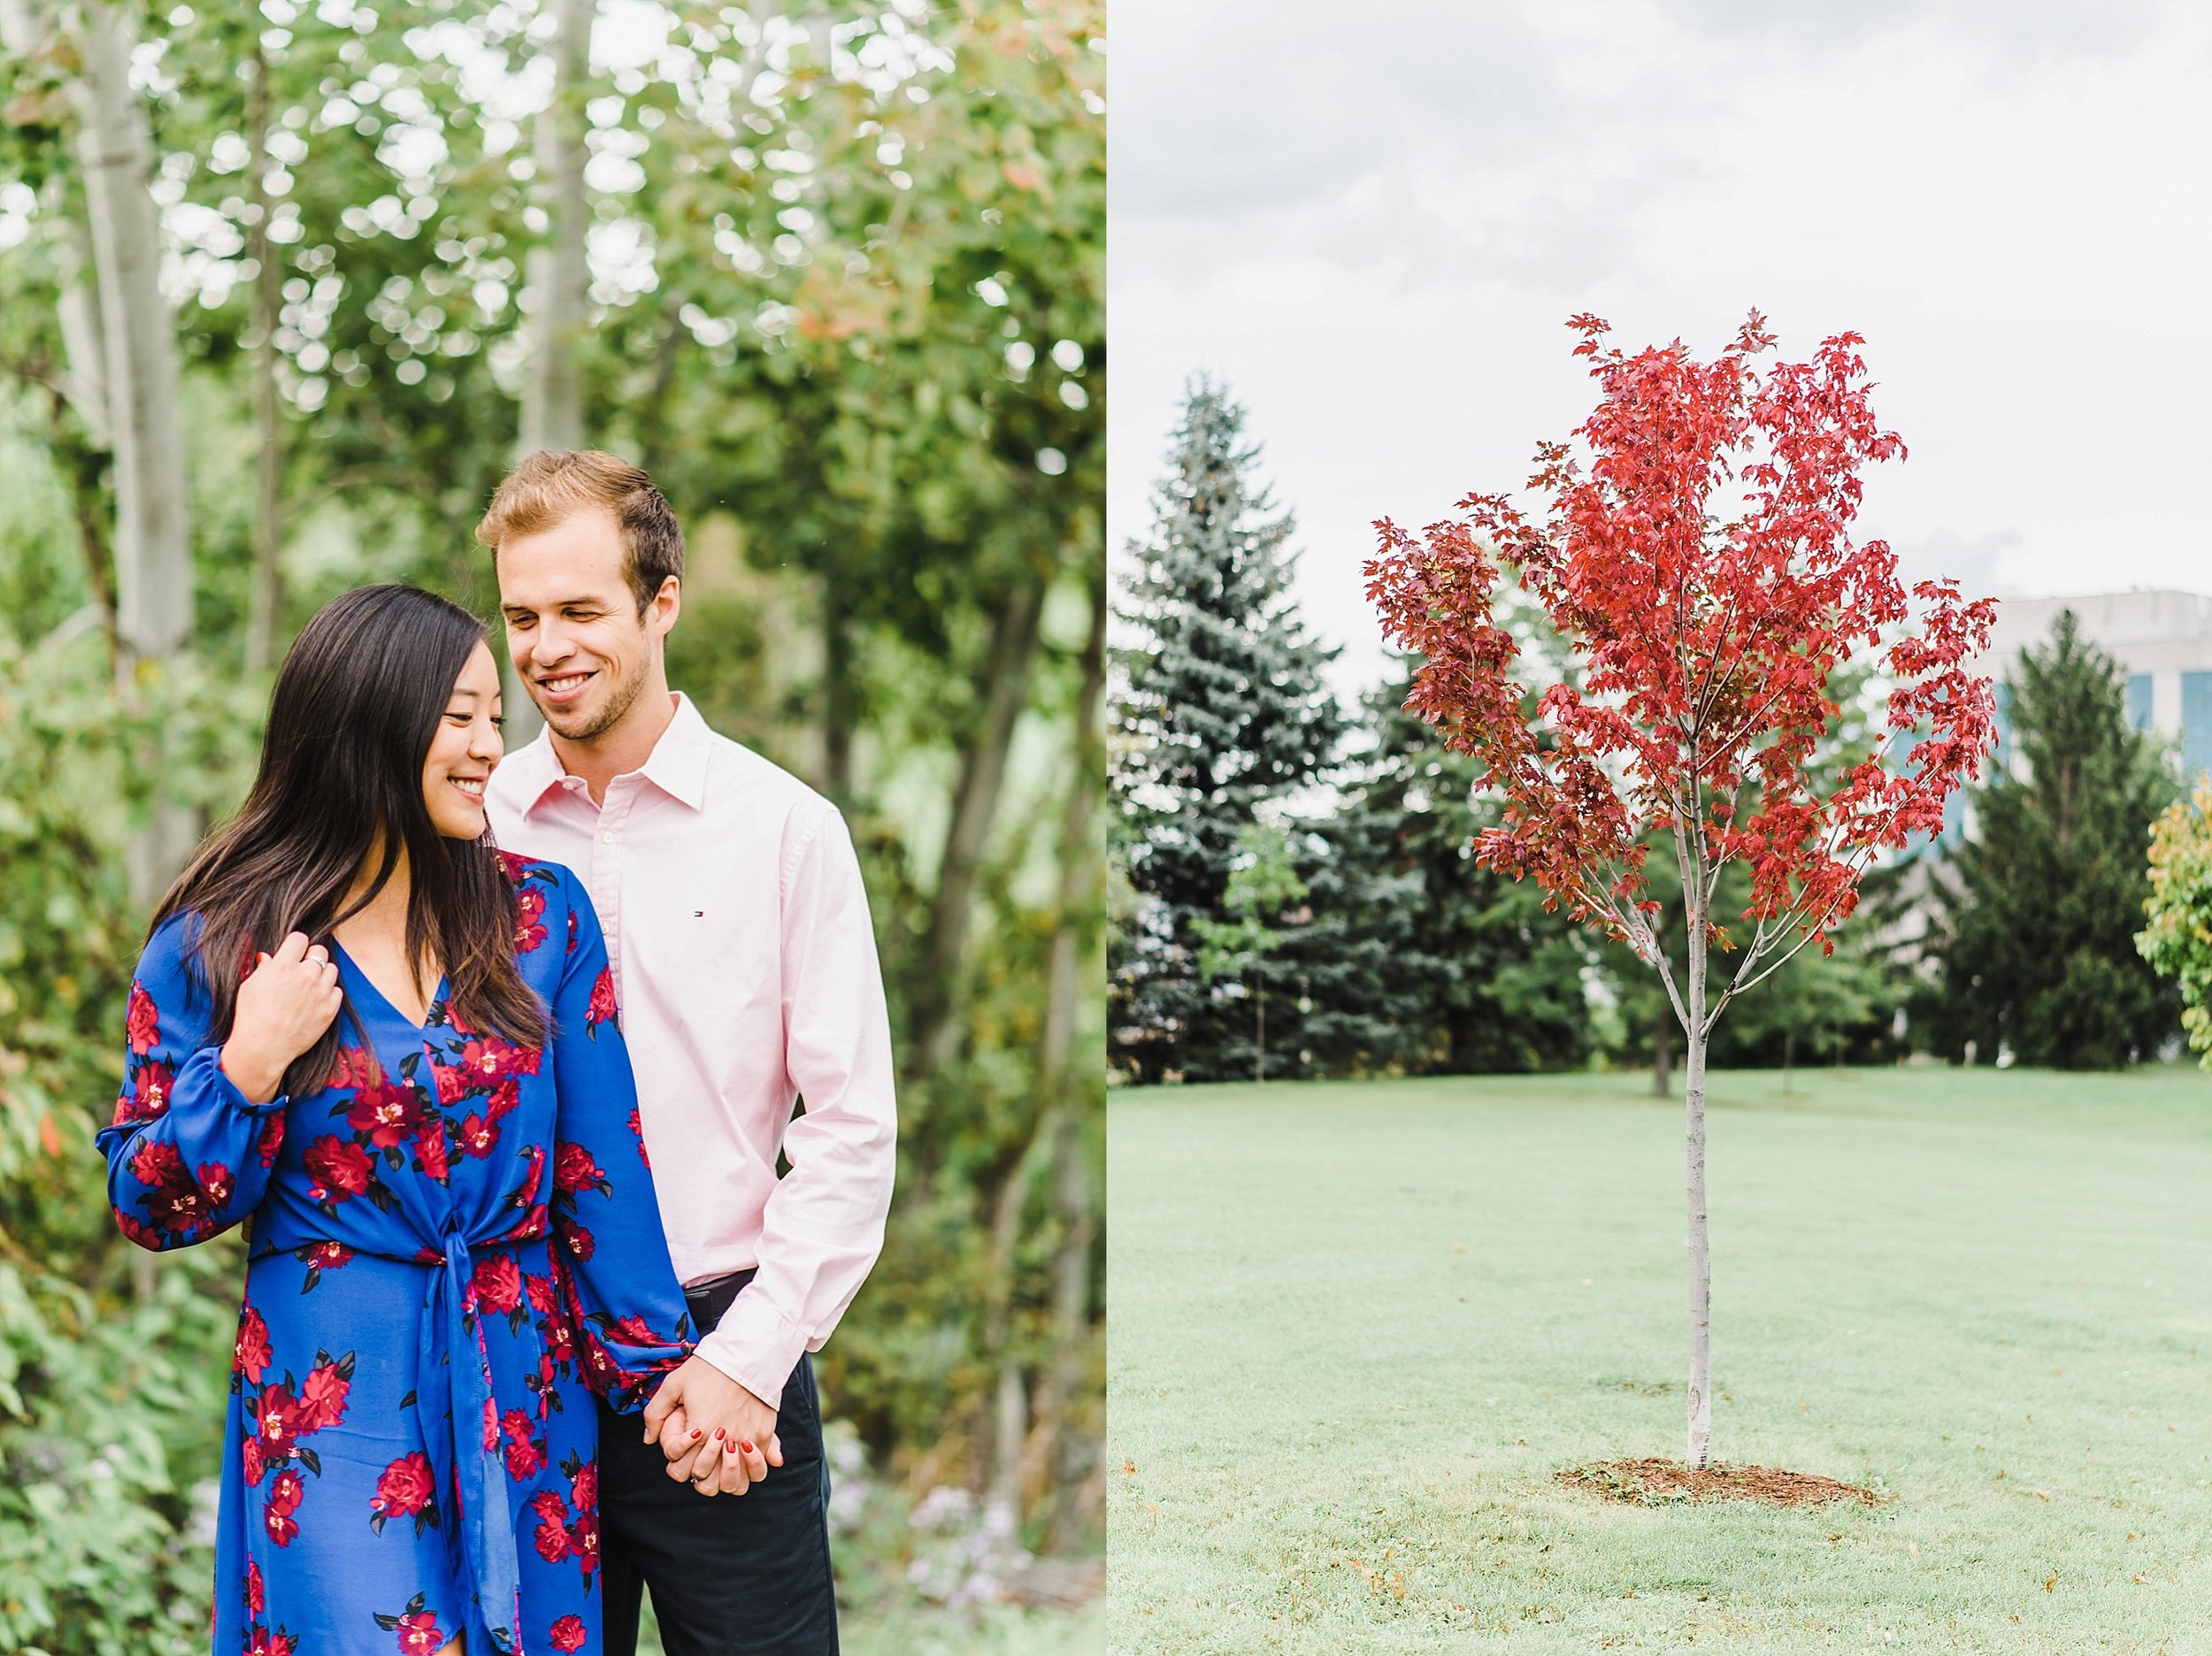 light airy indie fine art ottawa wedding photographer | Ali and Batoul Photography_0921.jpg